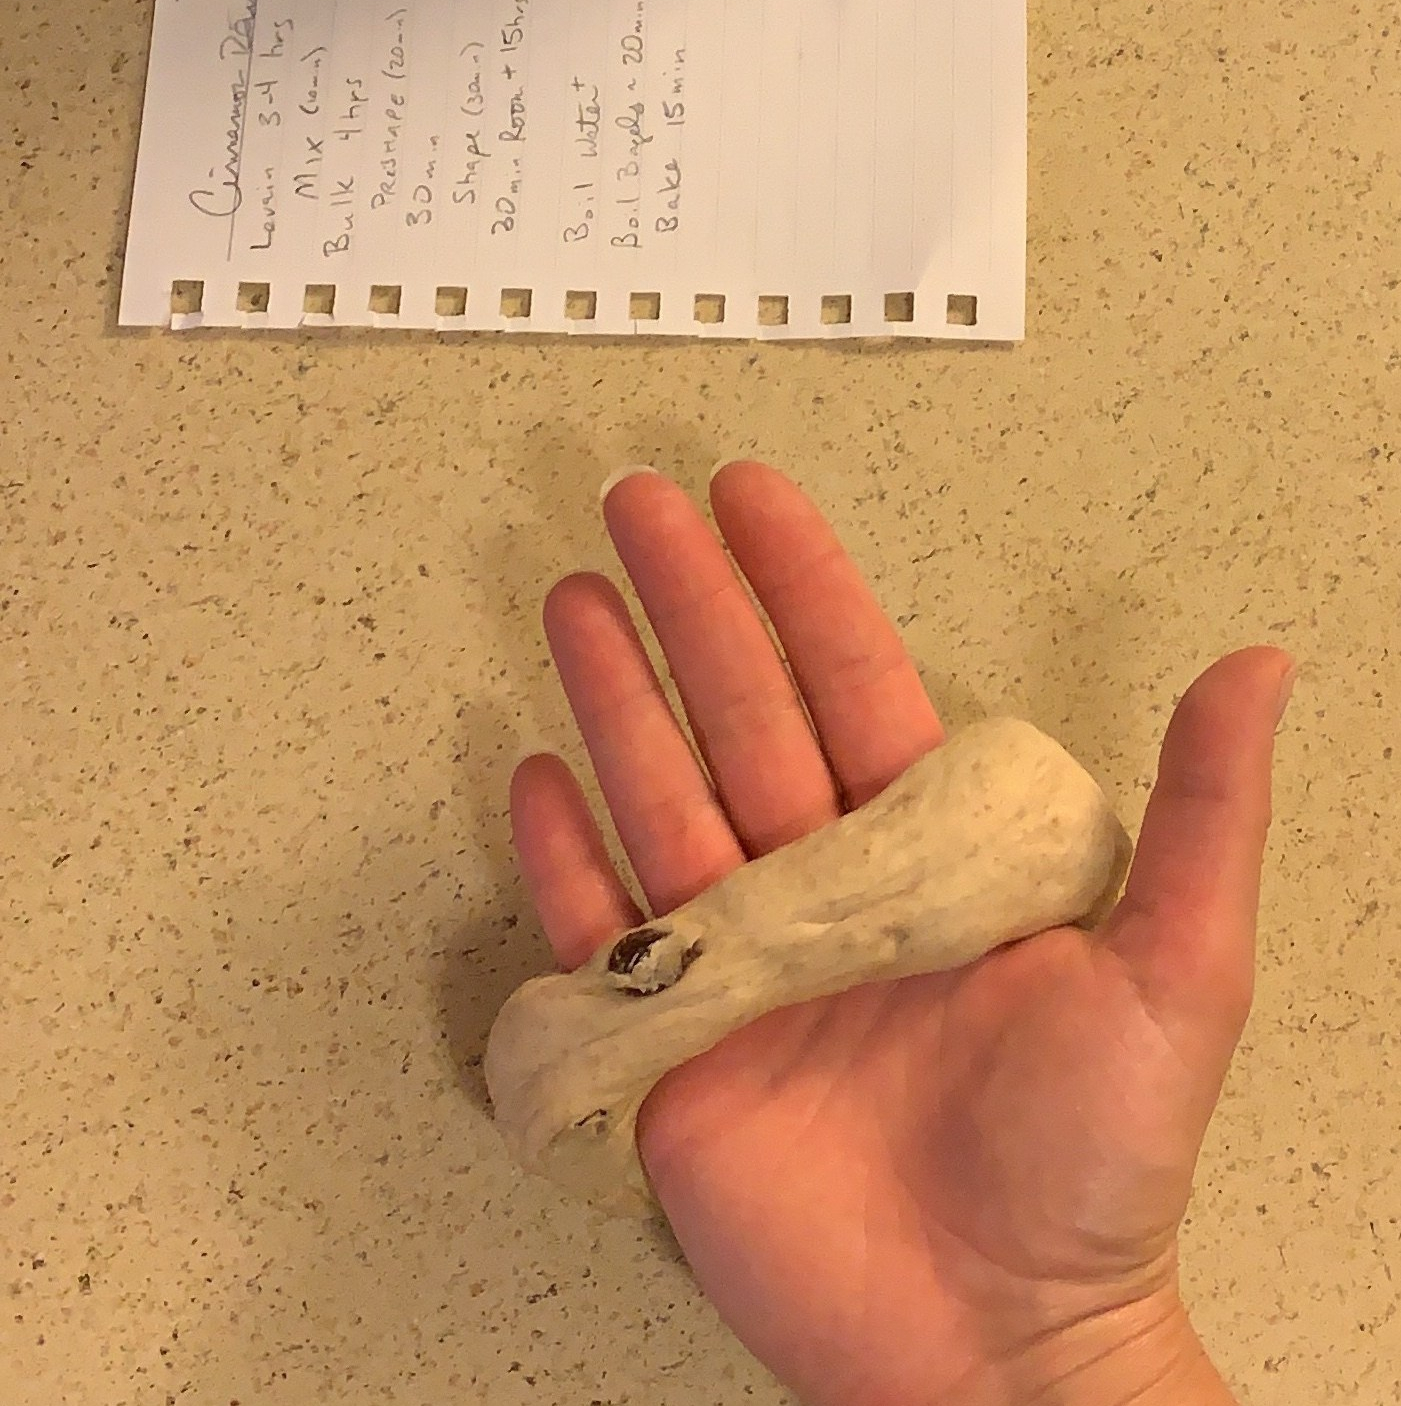 hand with bagel dough wrapped around the palm, next to a piece of notebook paper on the counter